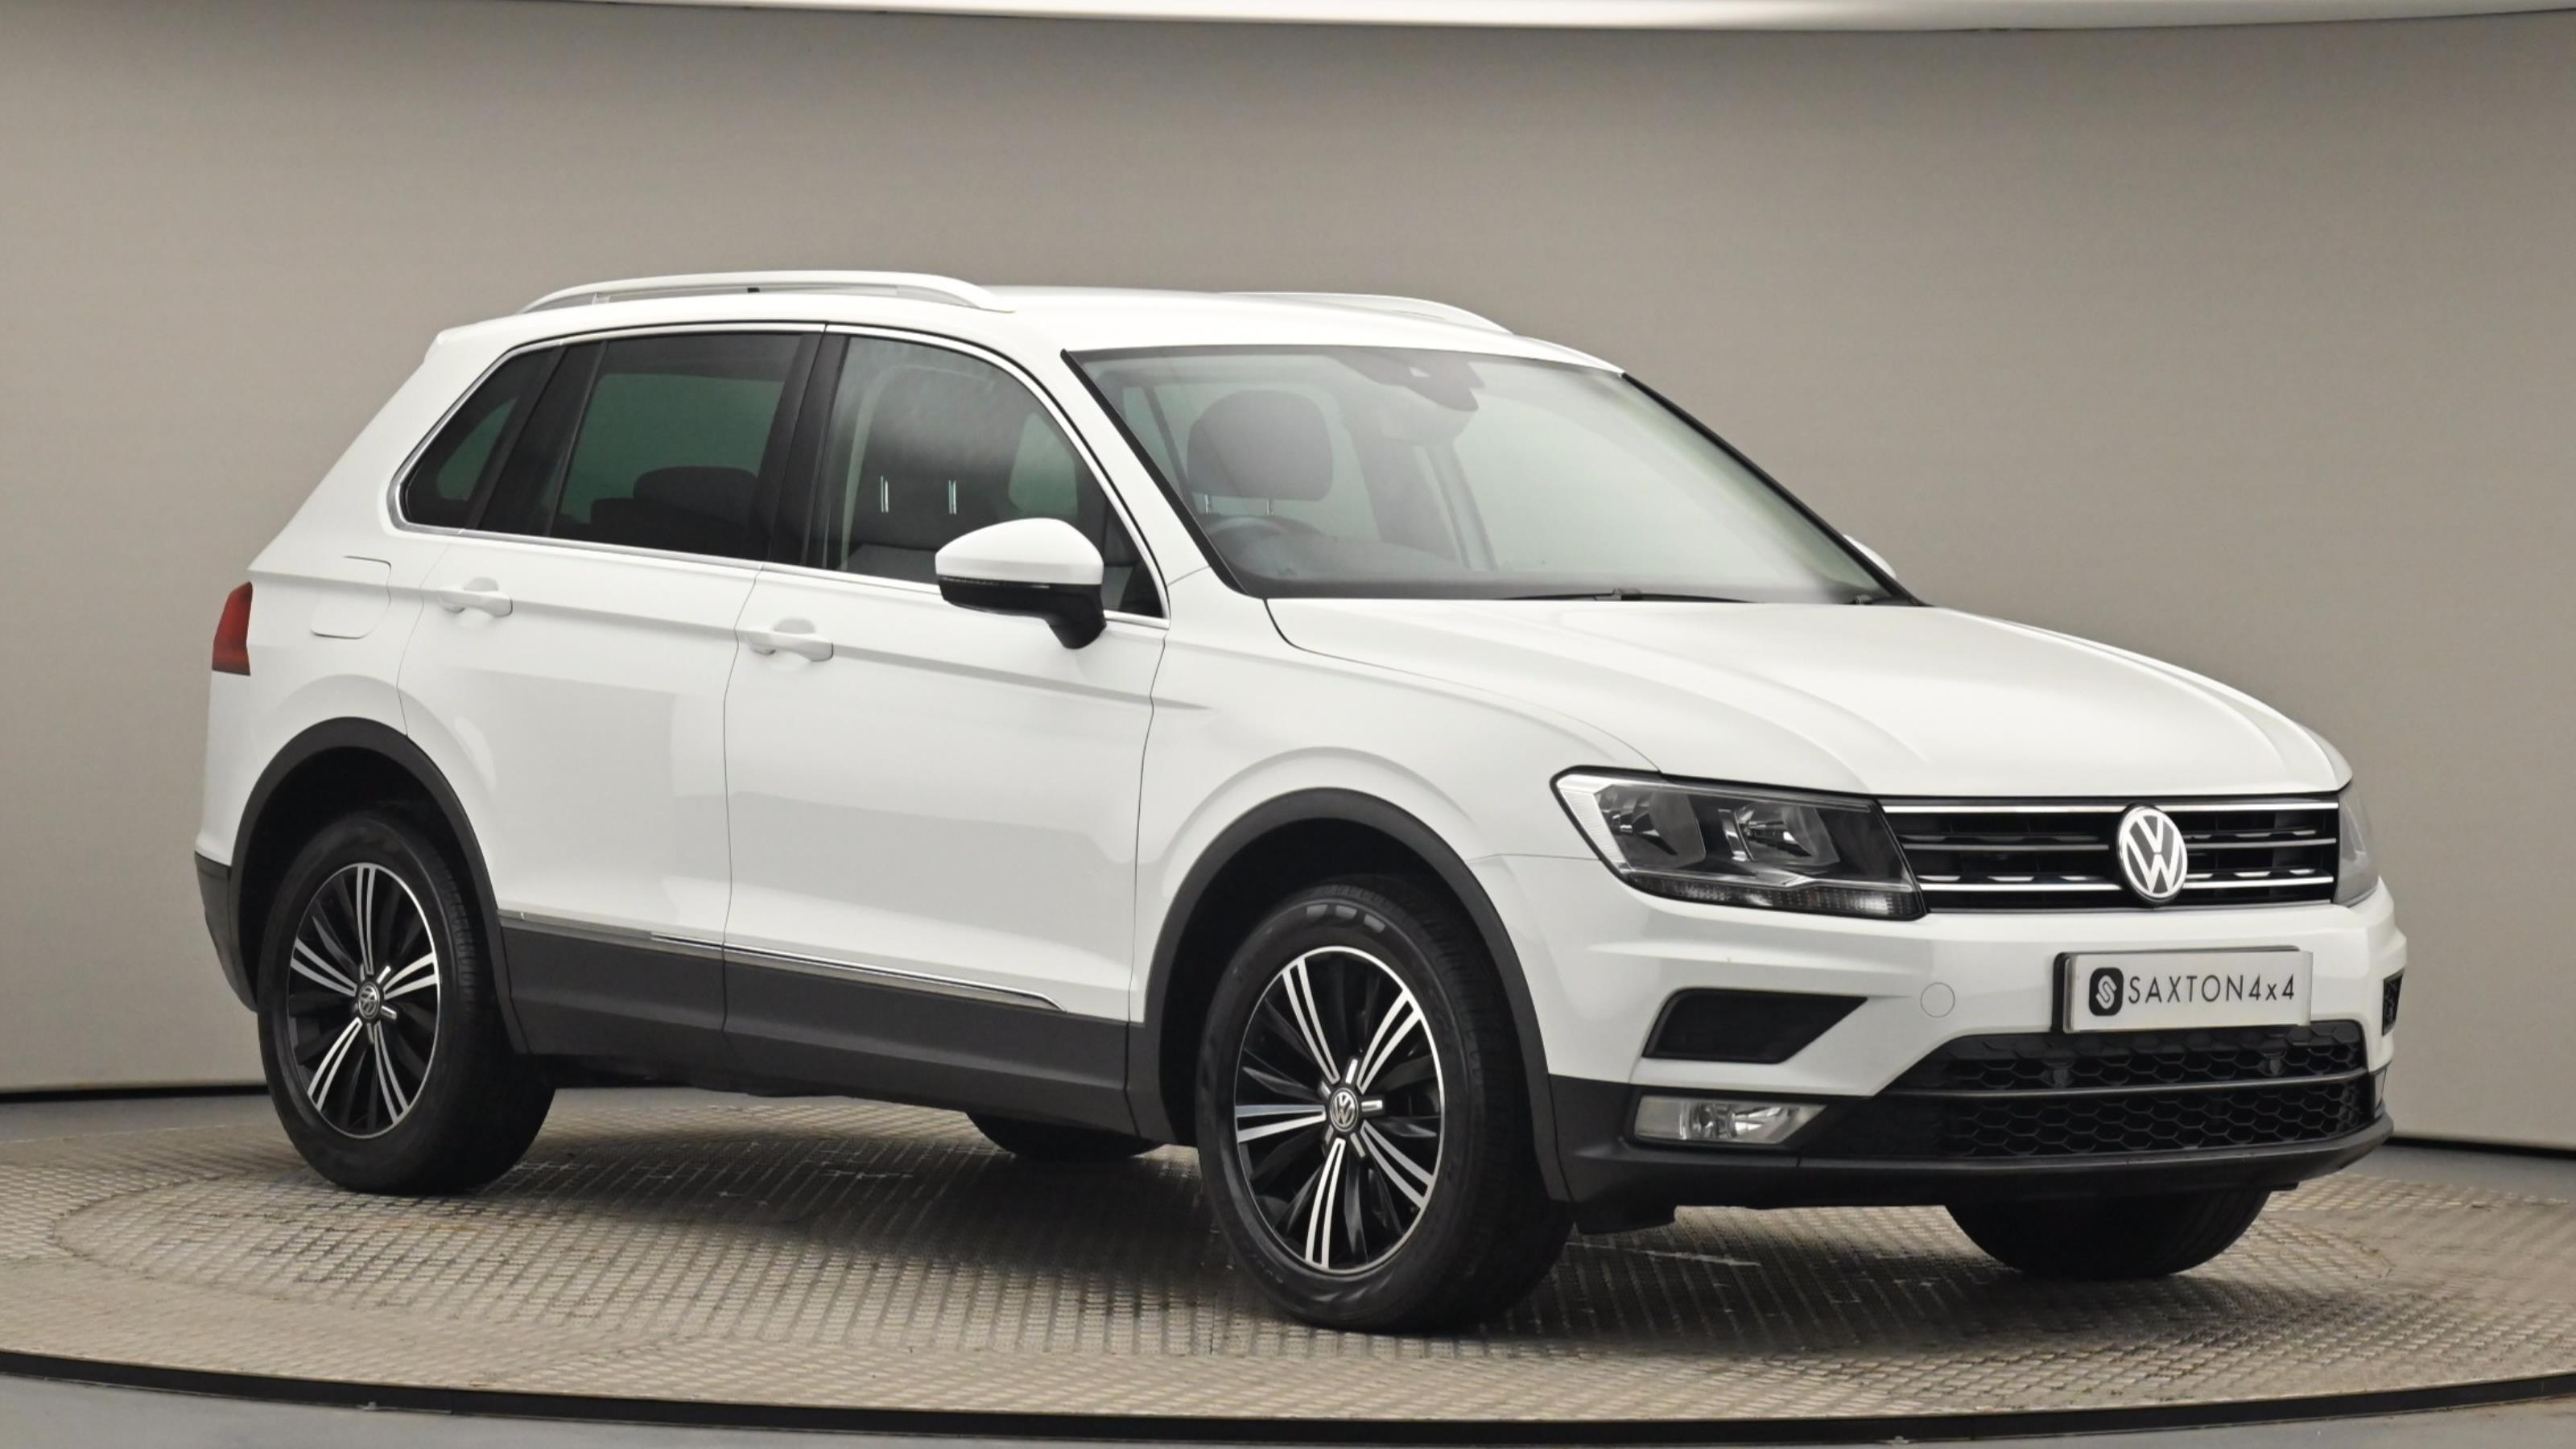 Used 2016 Volkswagen TIGUAN 2.0 TDi 150 4Motion SE 5dr DSG WHITE at Saxton4x4